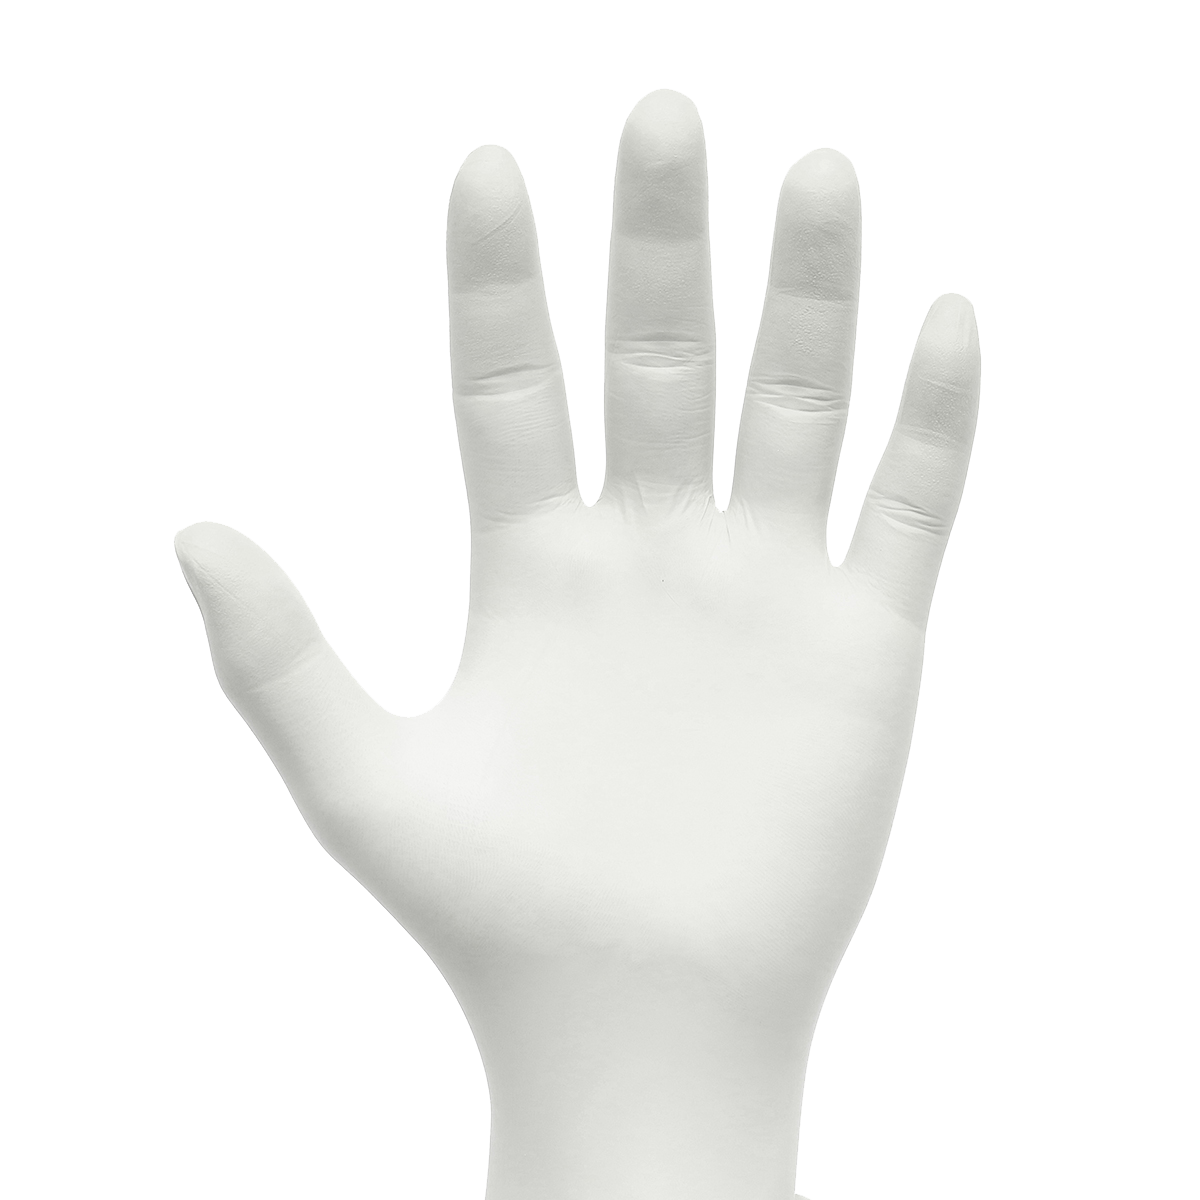 STRONG General Purpose Latex Gloves - Powder Free